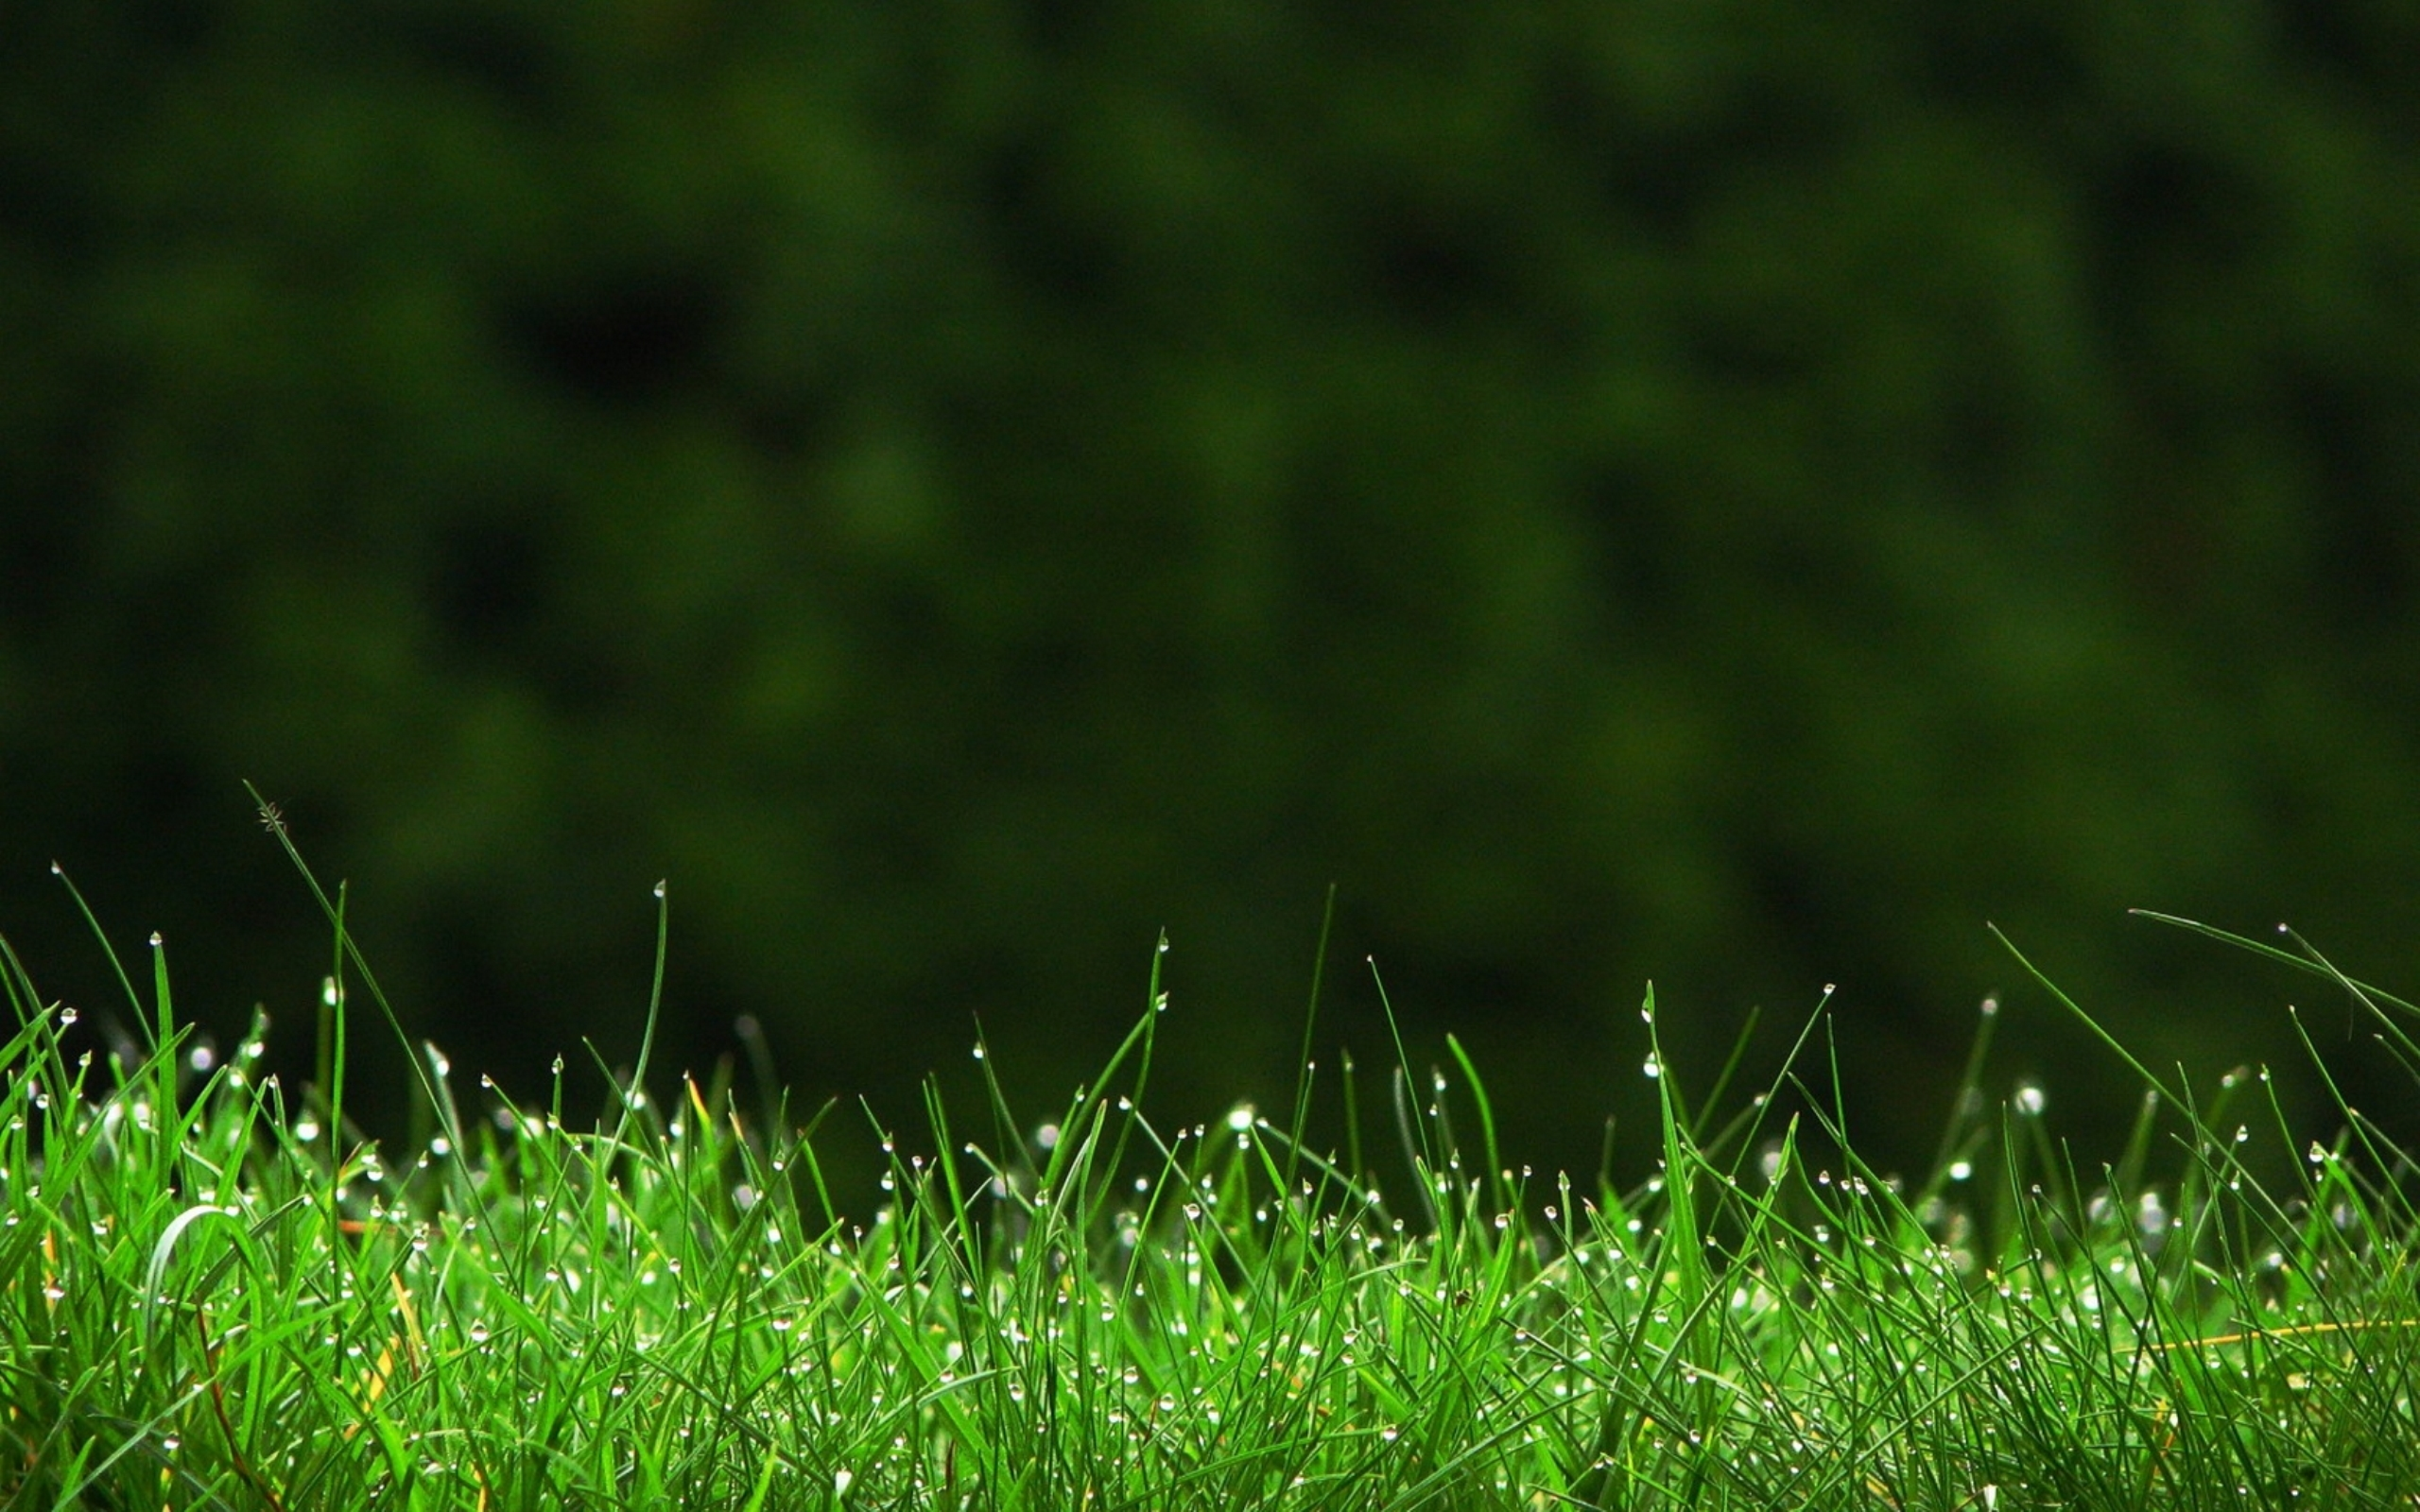 Green Grass Wallpaper HD